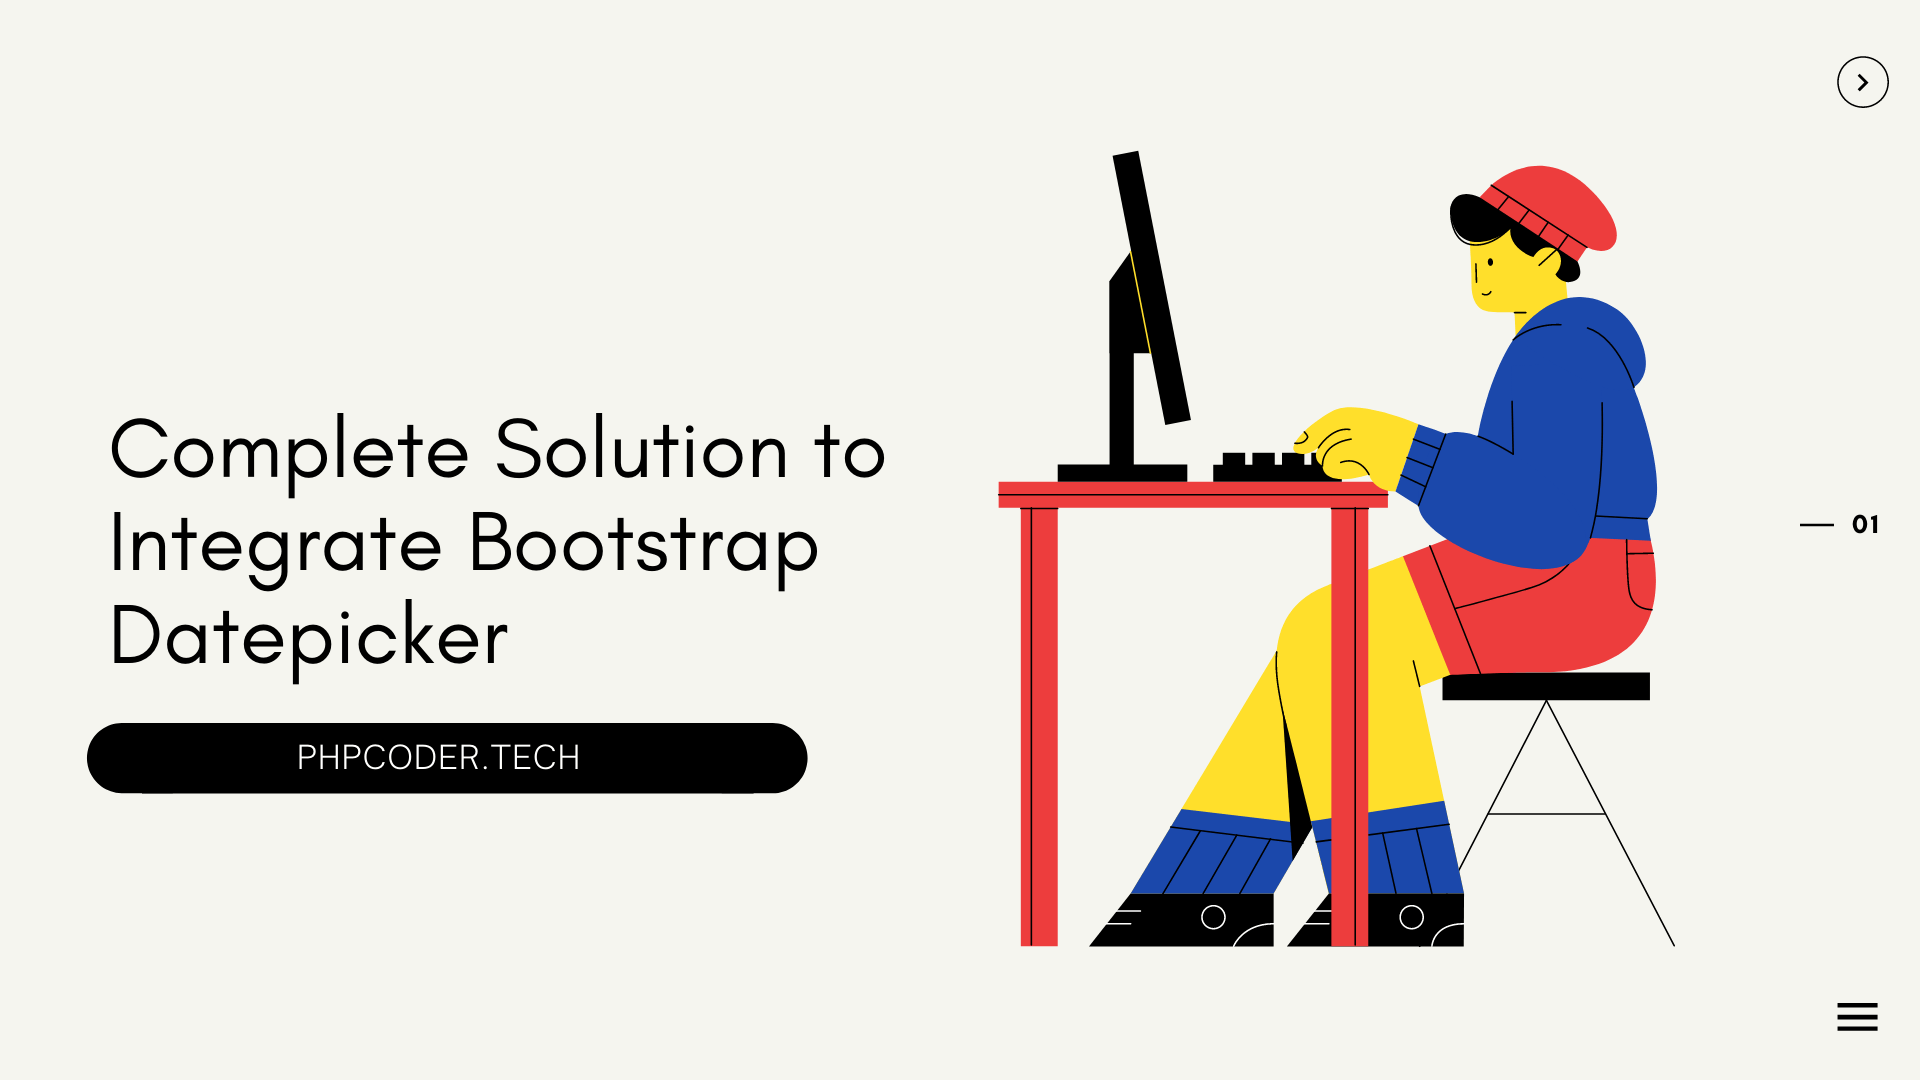 Bootstrap Datepicker - Complete Solution to Integrate - PHPCODER.TECH